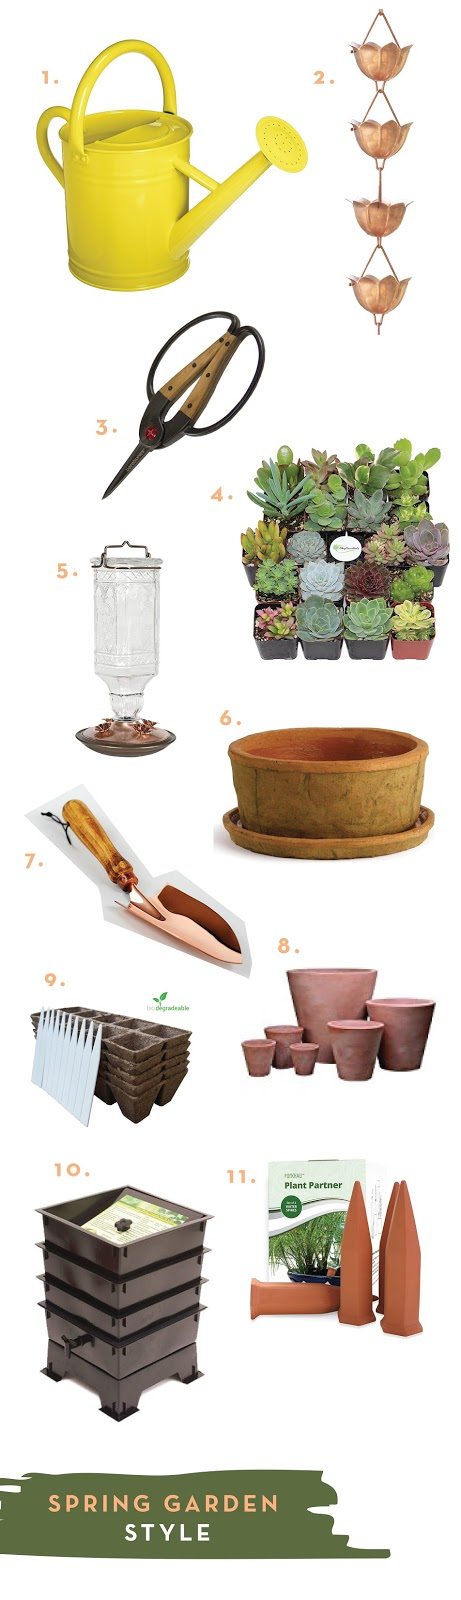 Collection of garden tools you'll need to start a spring garden